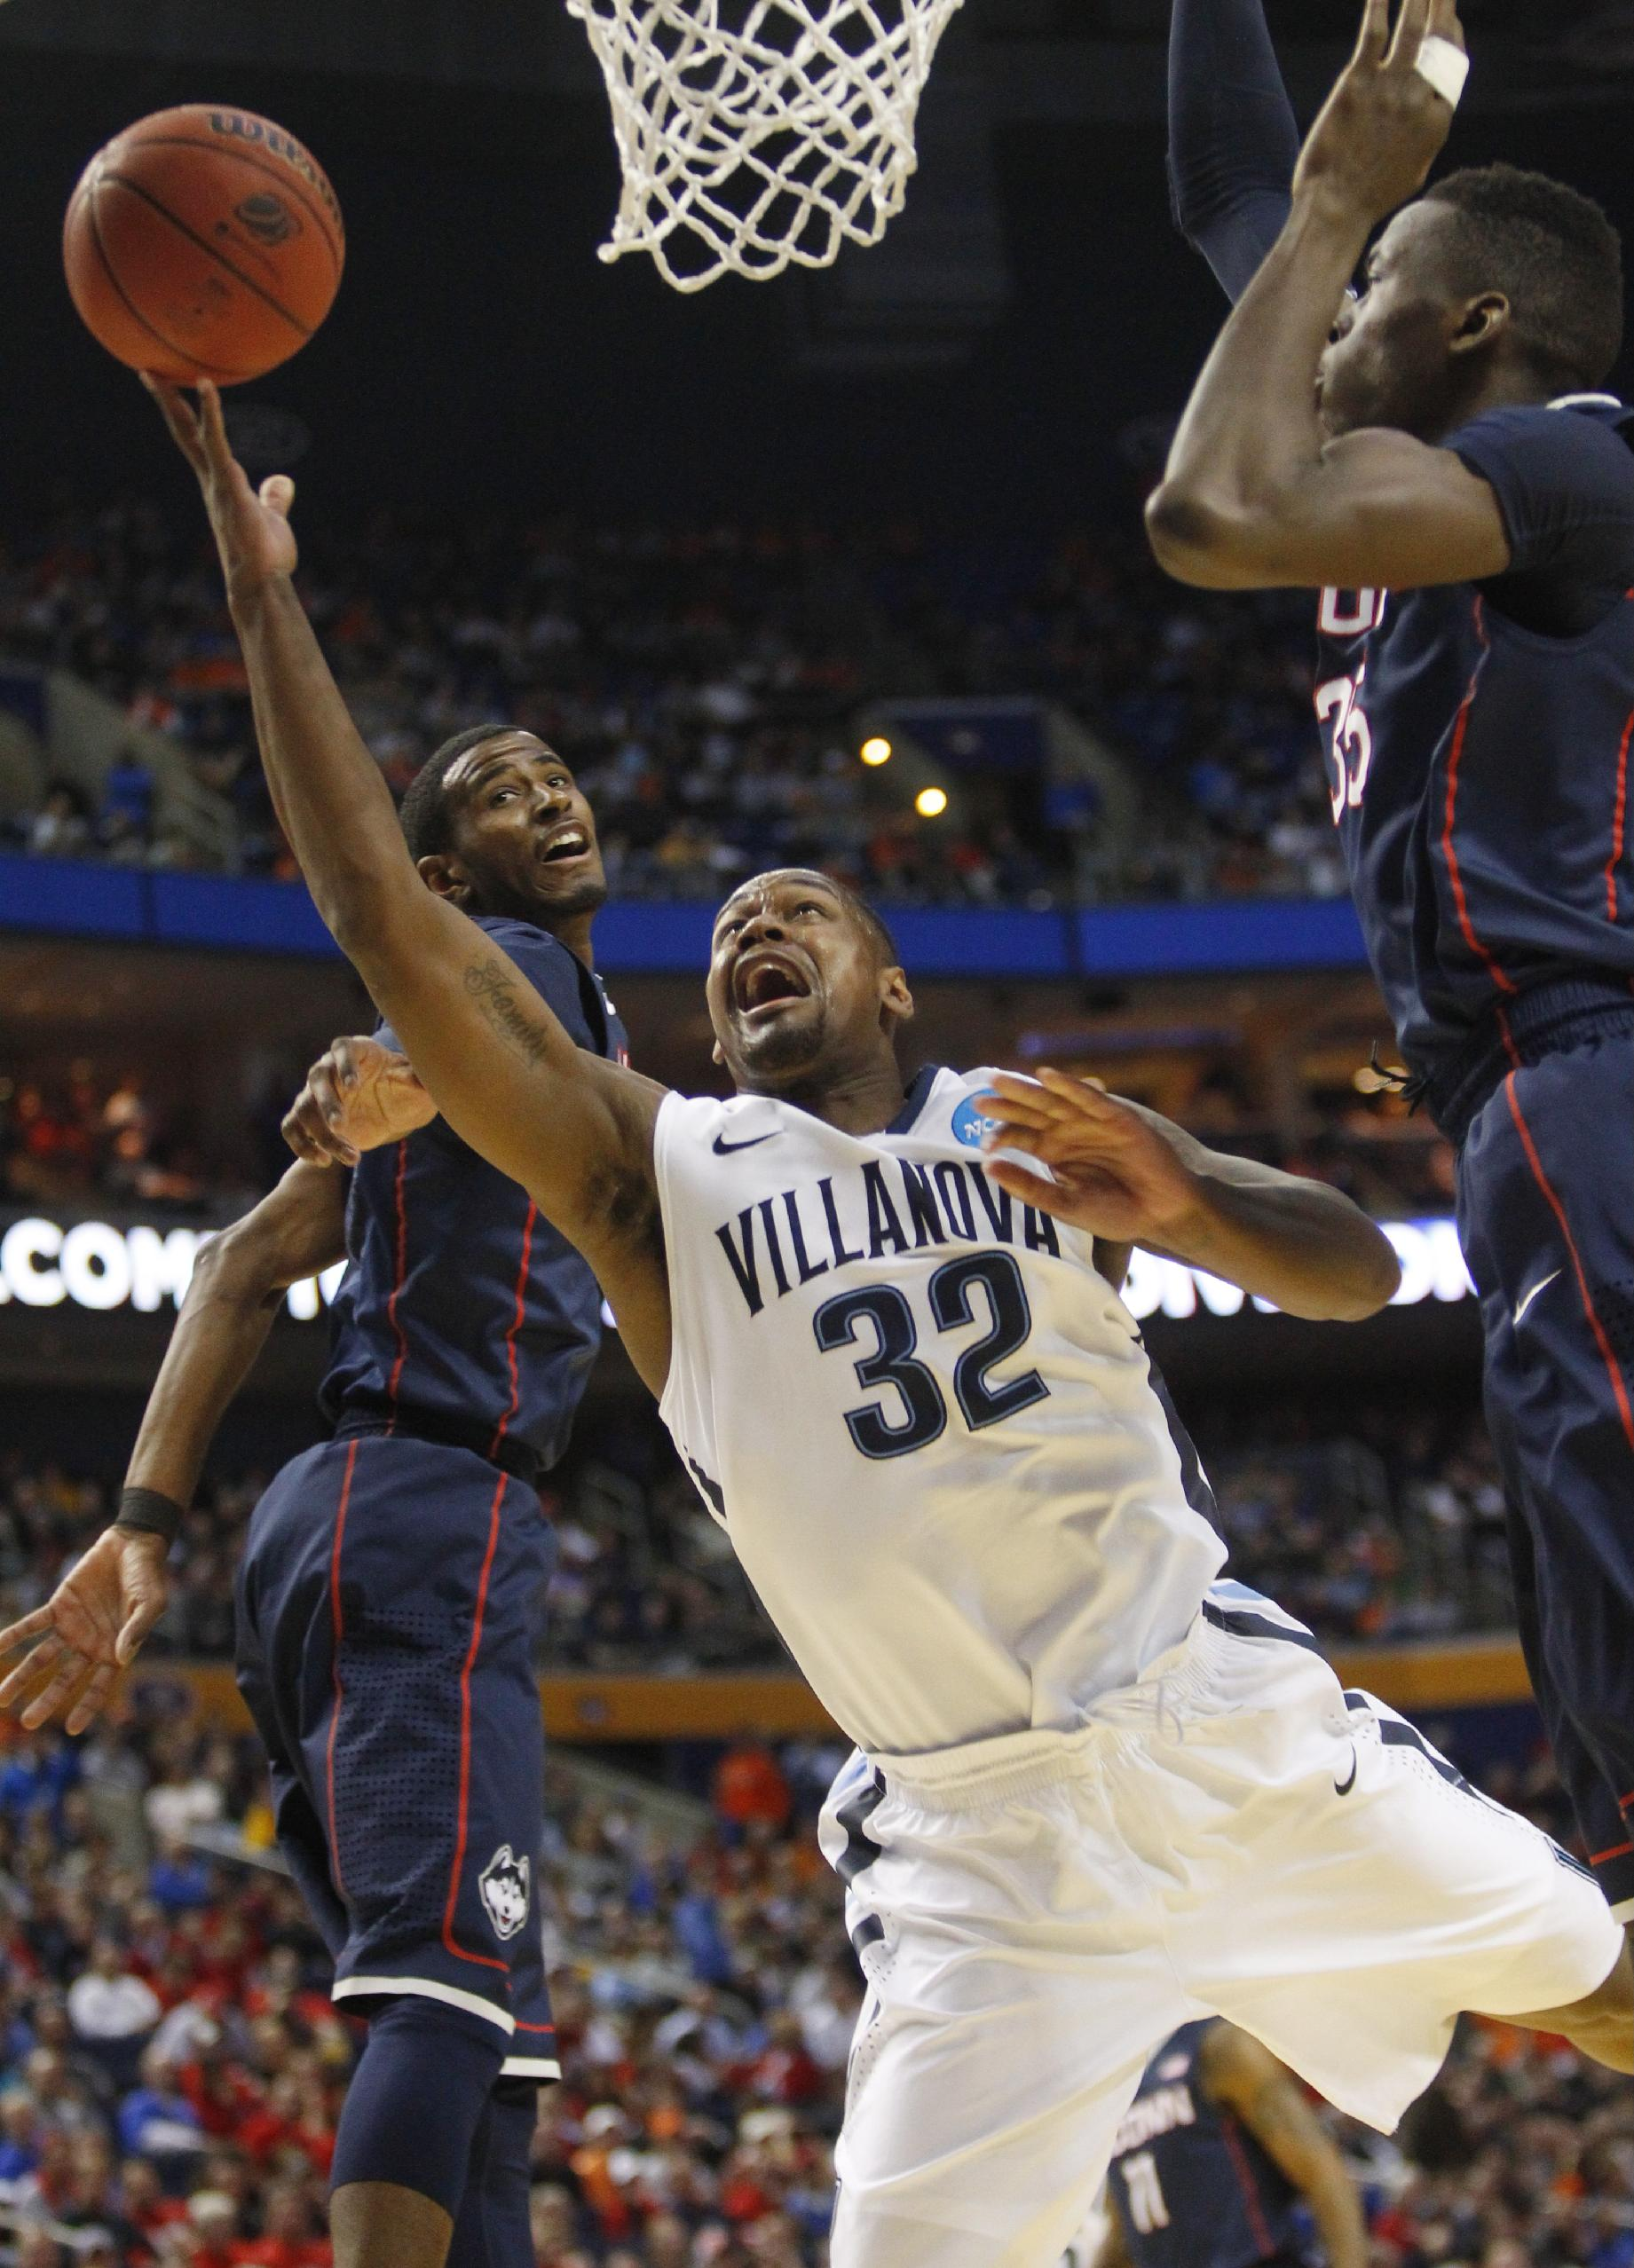 Napier leads UConn in 77-65 win over Villanova